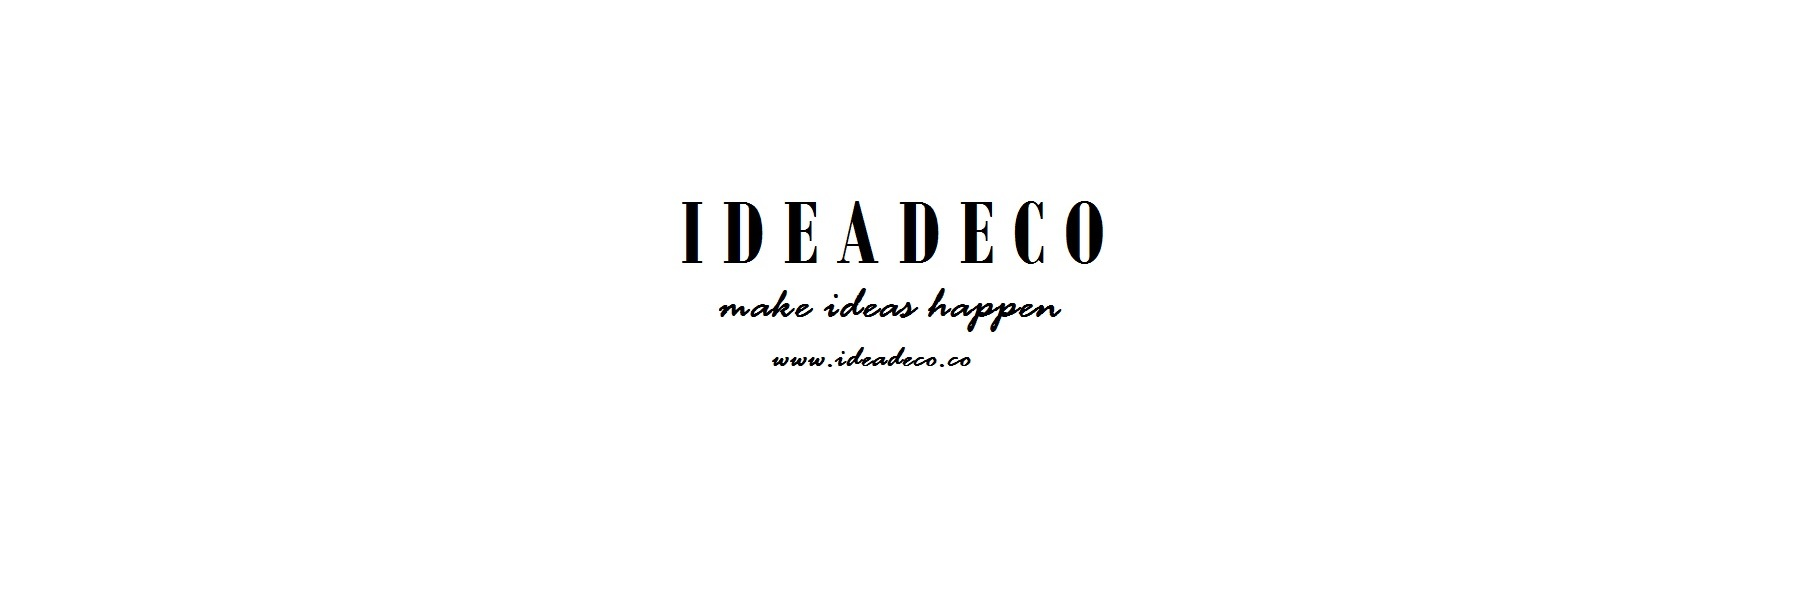 Who is IdeaDeco